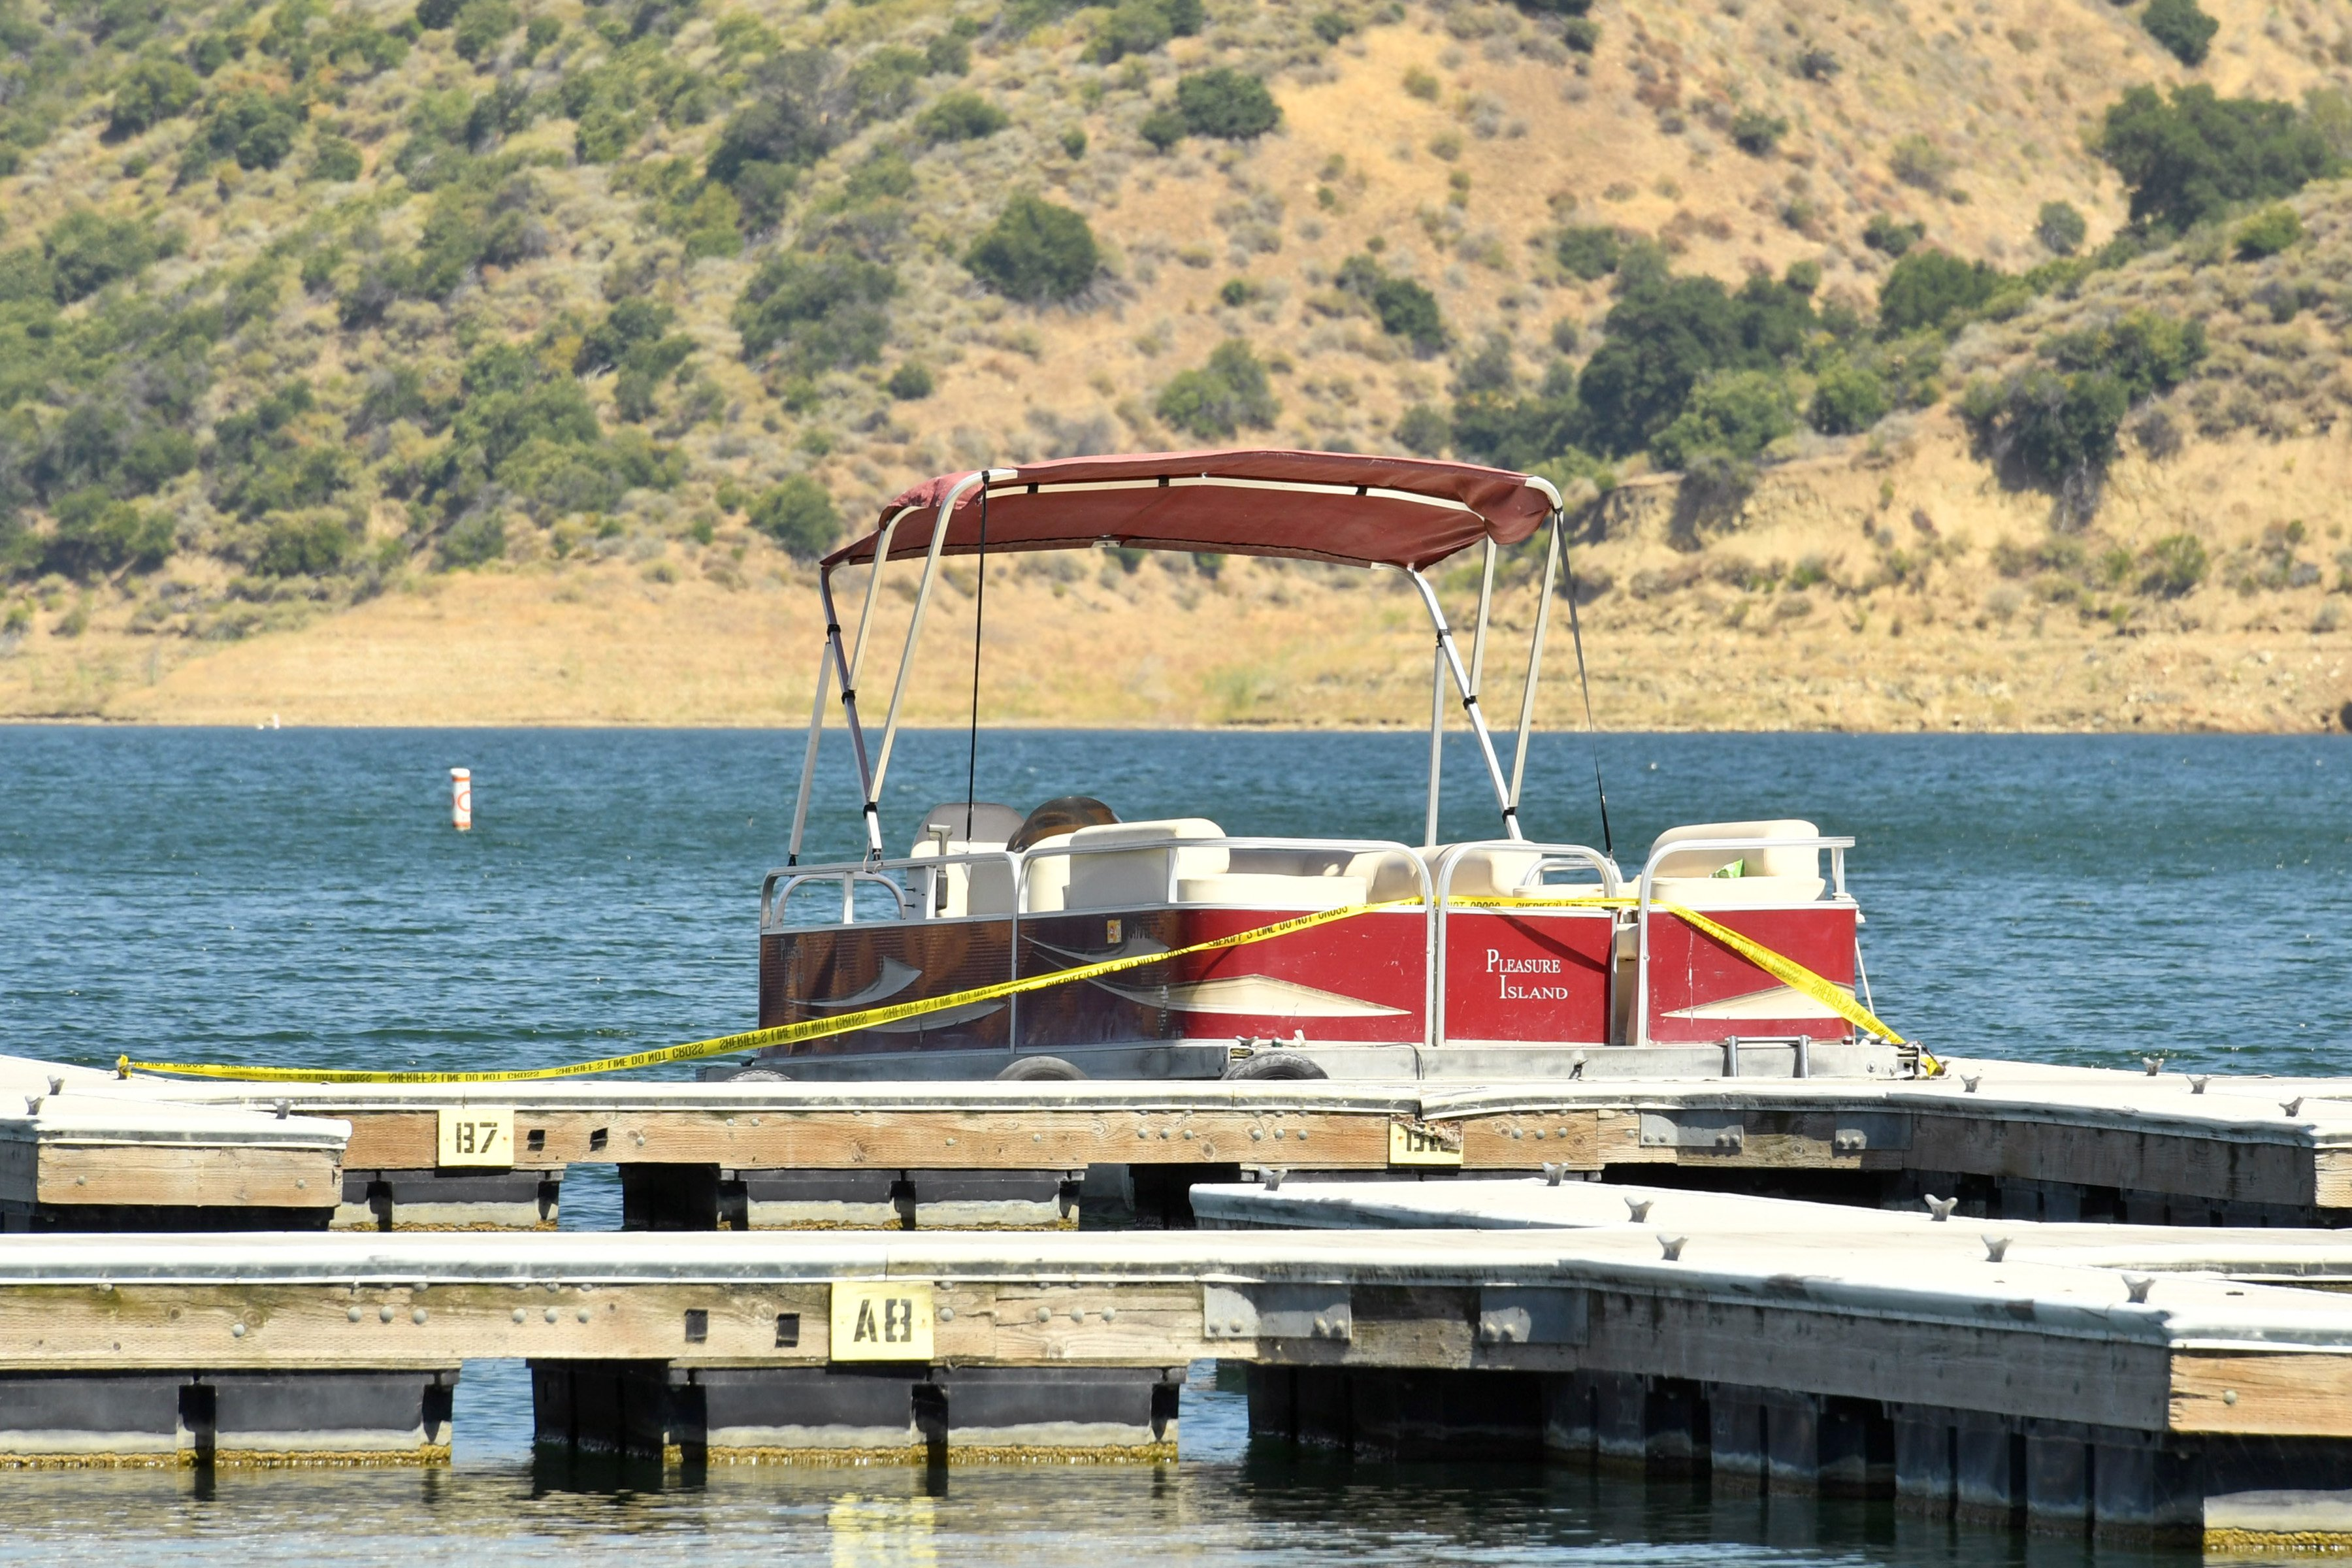 A boat is docked and roped off with police tape at Lake Piru, where actress Naya Rivera was reported missing Wednesday, on July 9, 2020, in Piru, California. | Source: Getty Images.